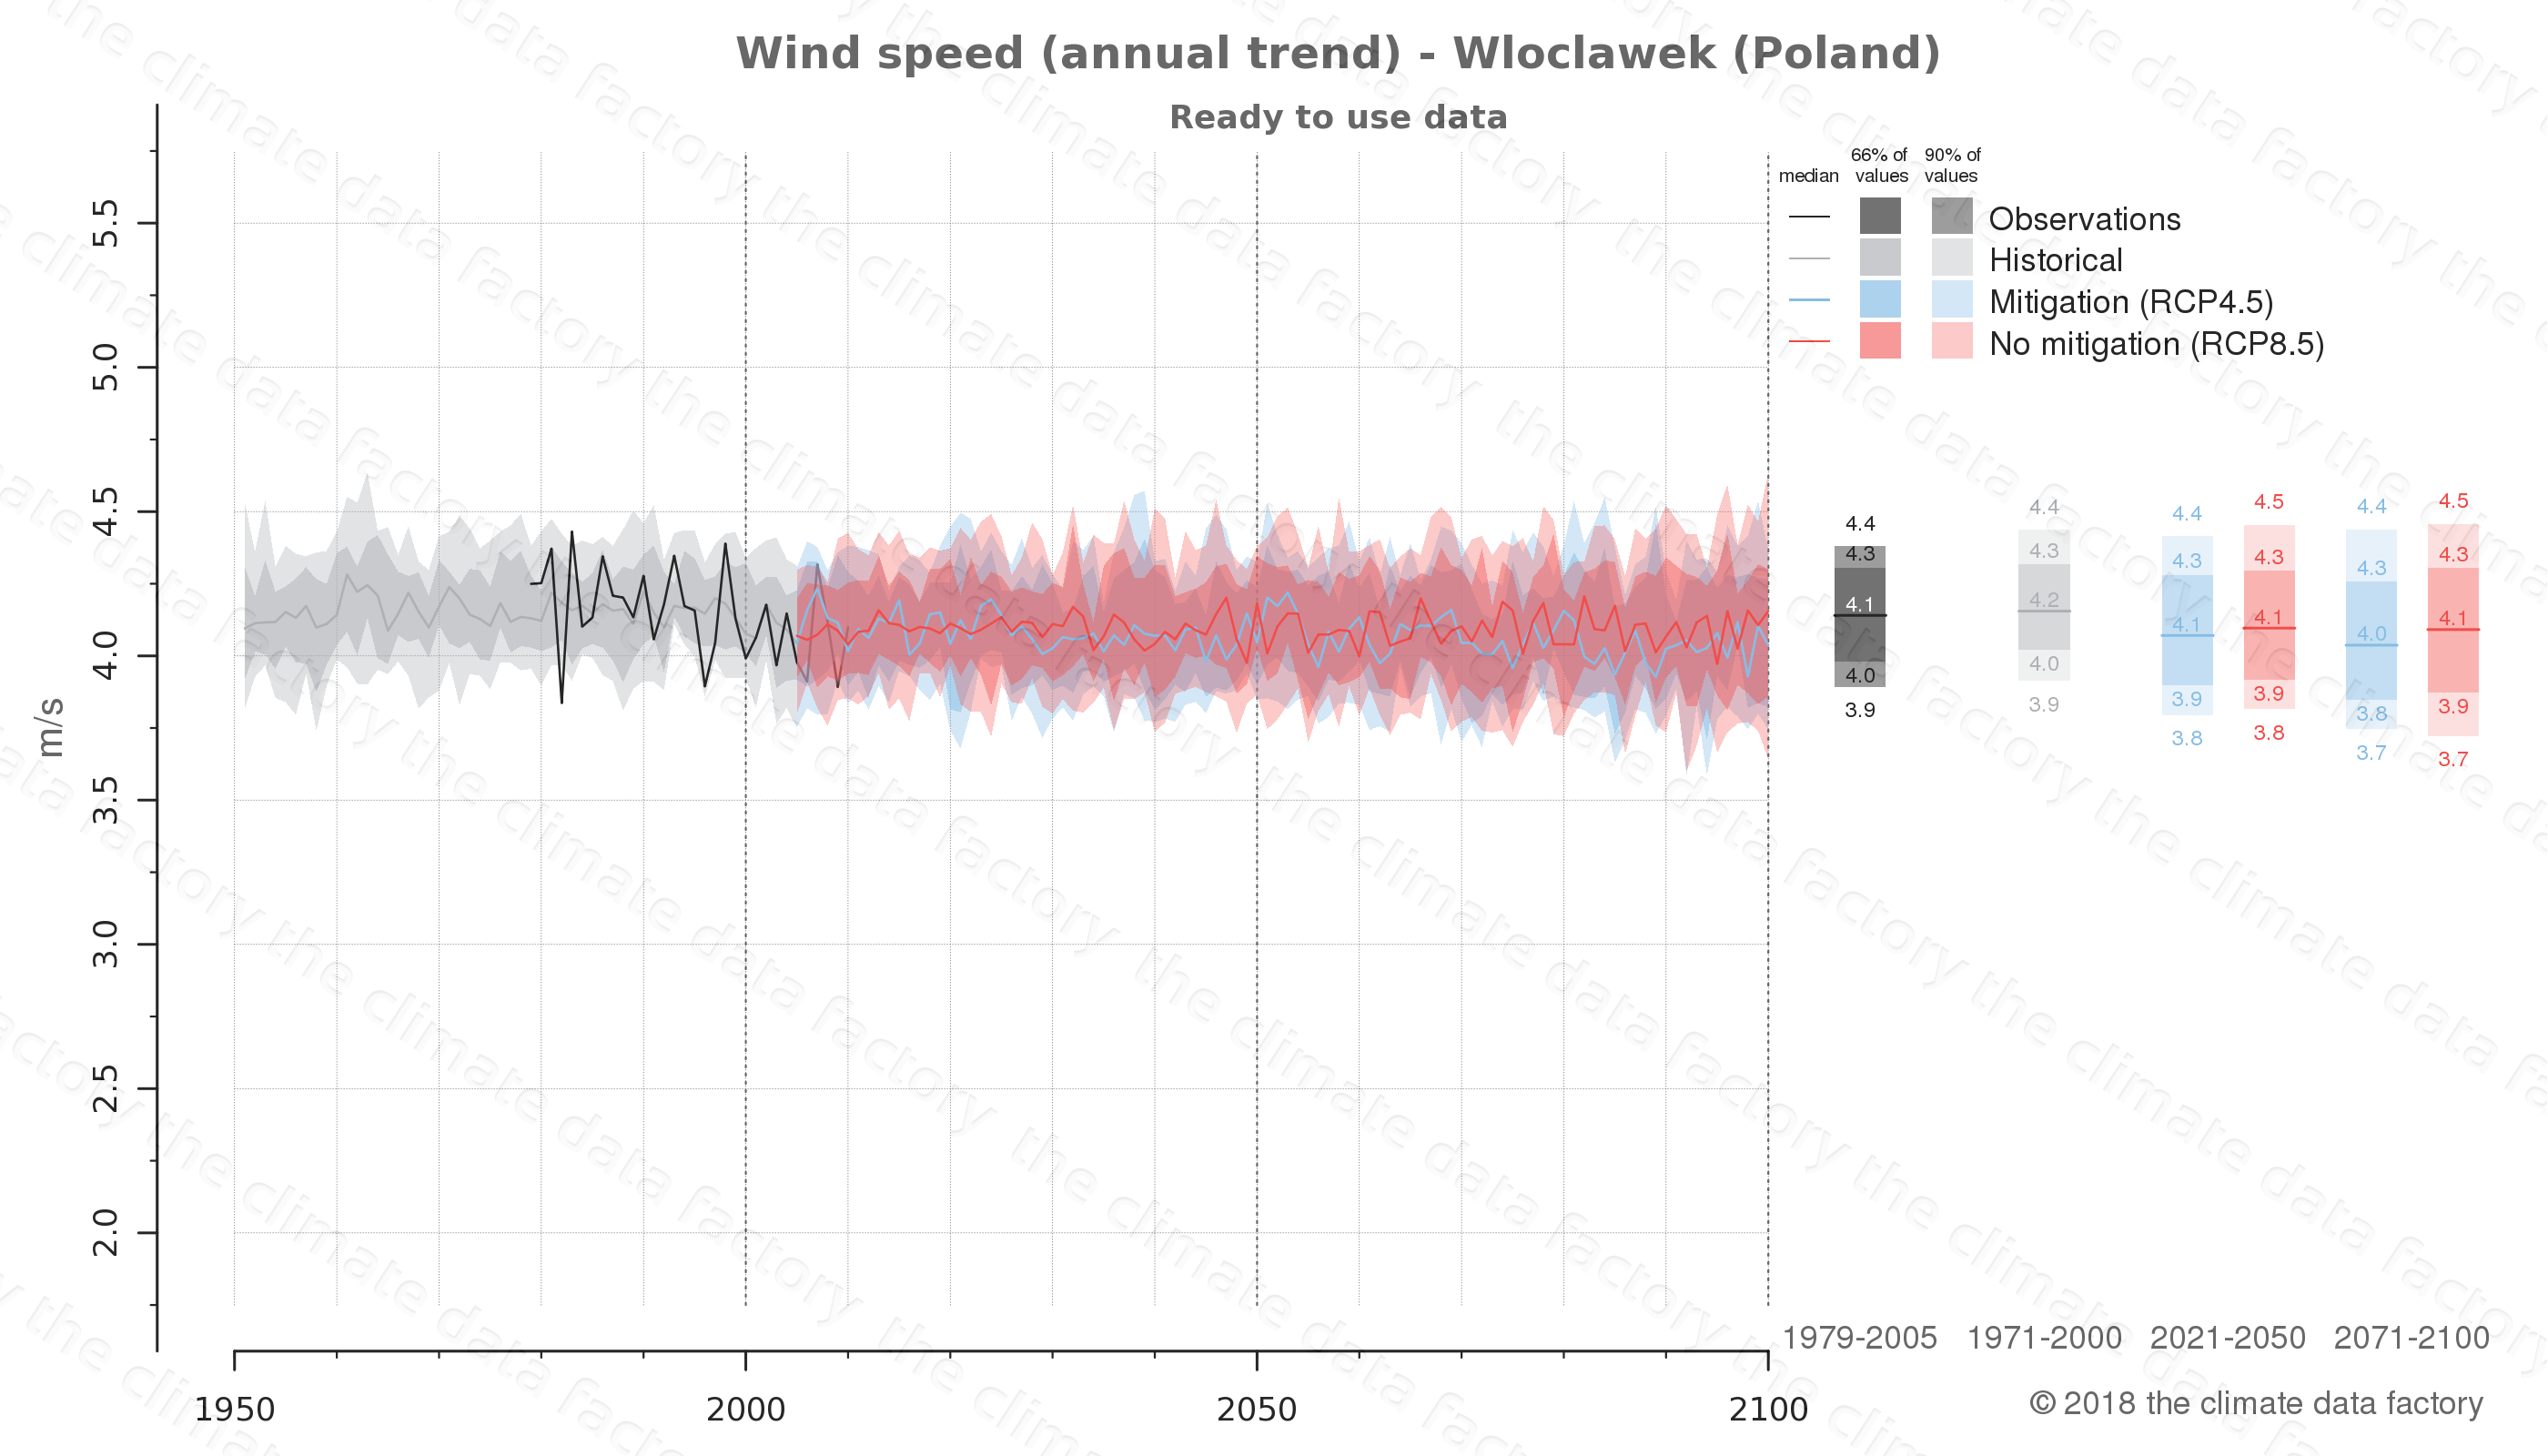 climate change data policy adaptation climate graph city data wind-speed wloclawek poland